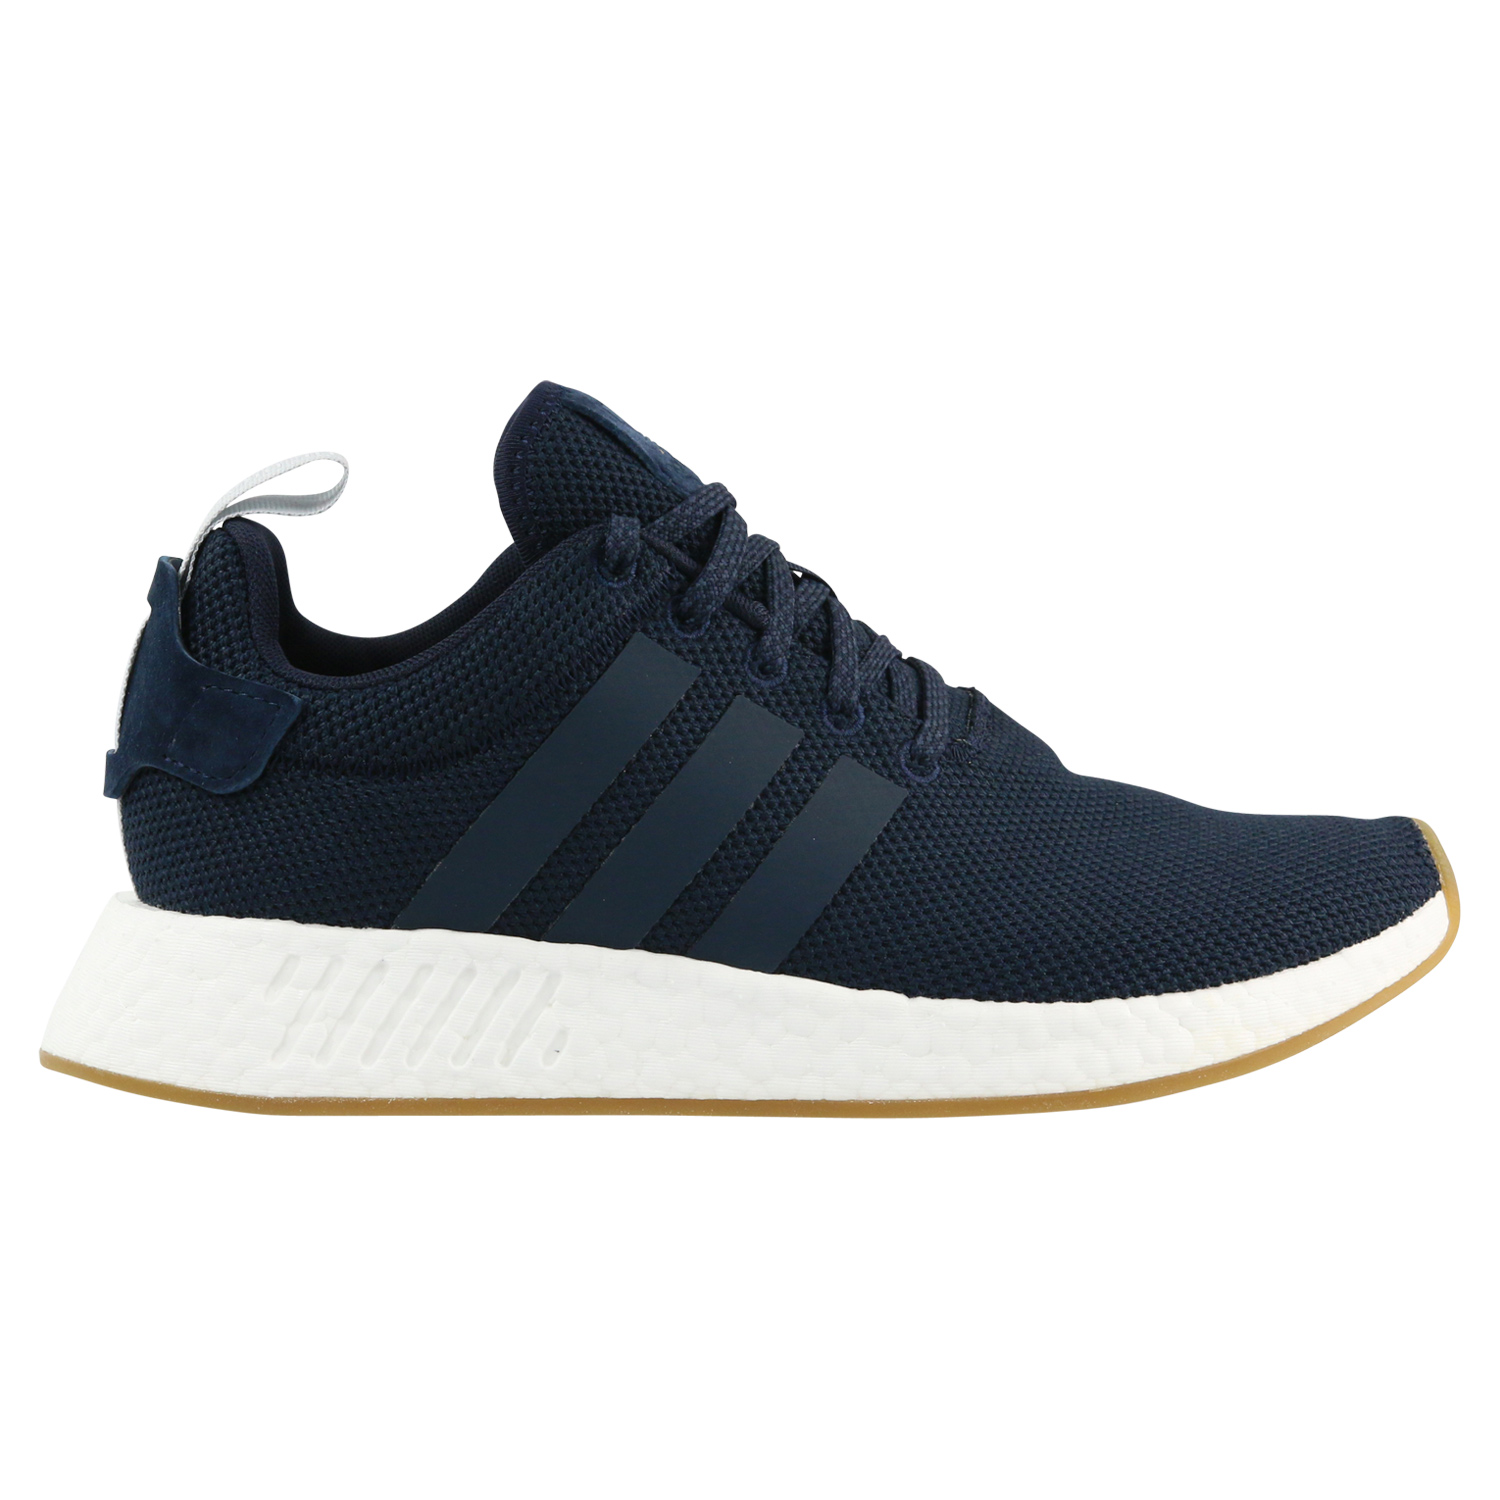 adidas nmd r2 originals sneaker schuhe turnschuhe damen ebay. Black Bedroom Furniture Sets. Home Design Ideas